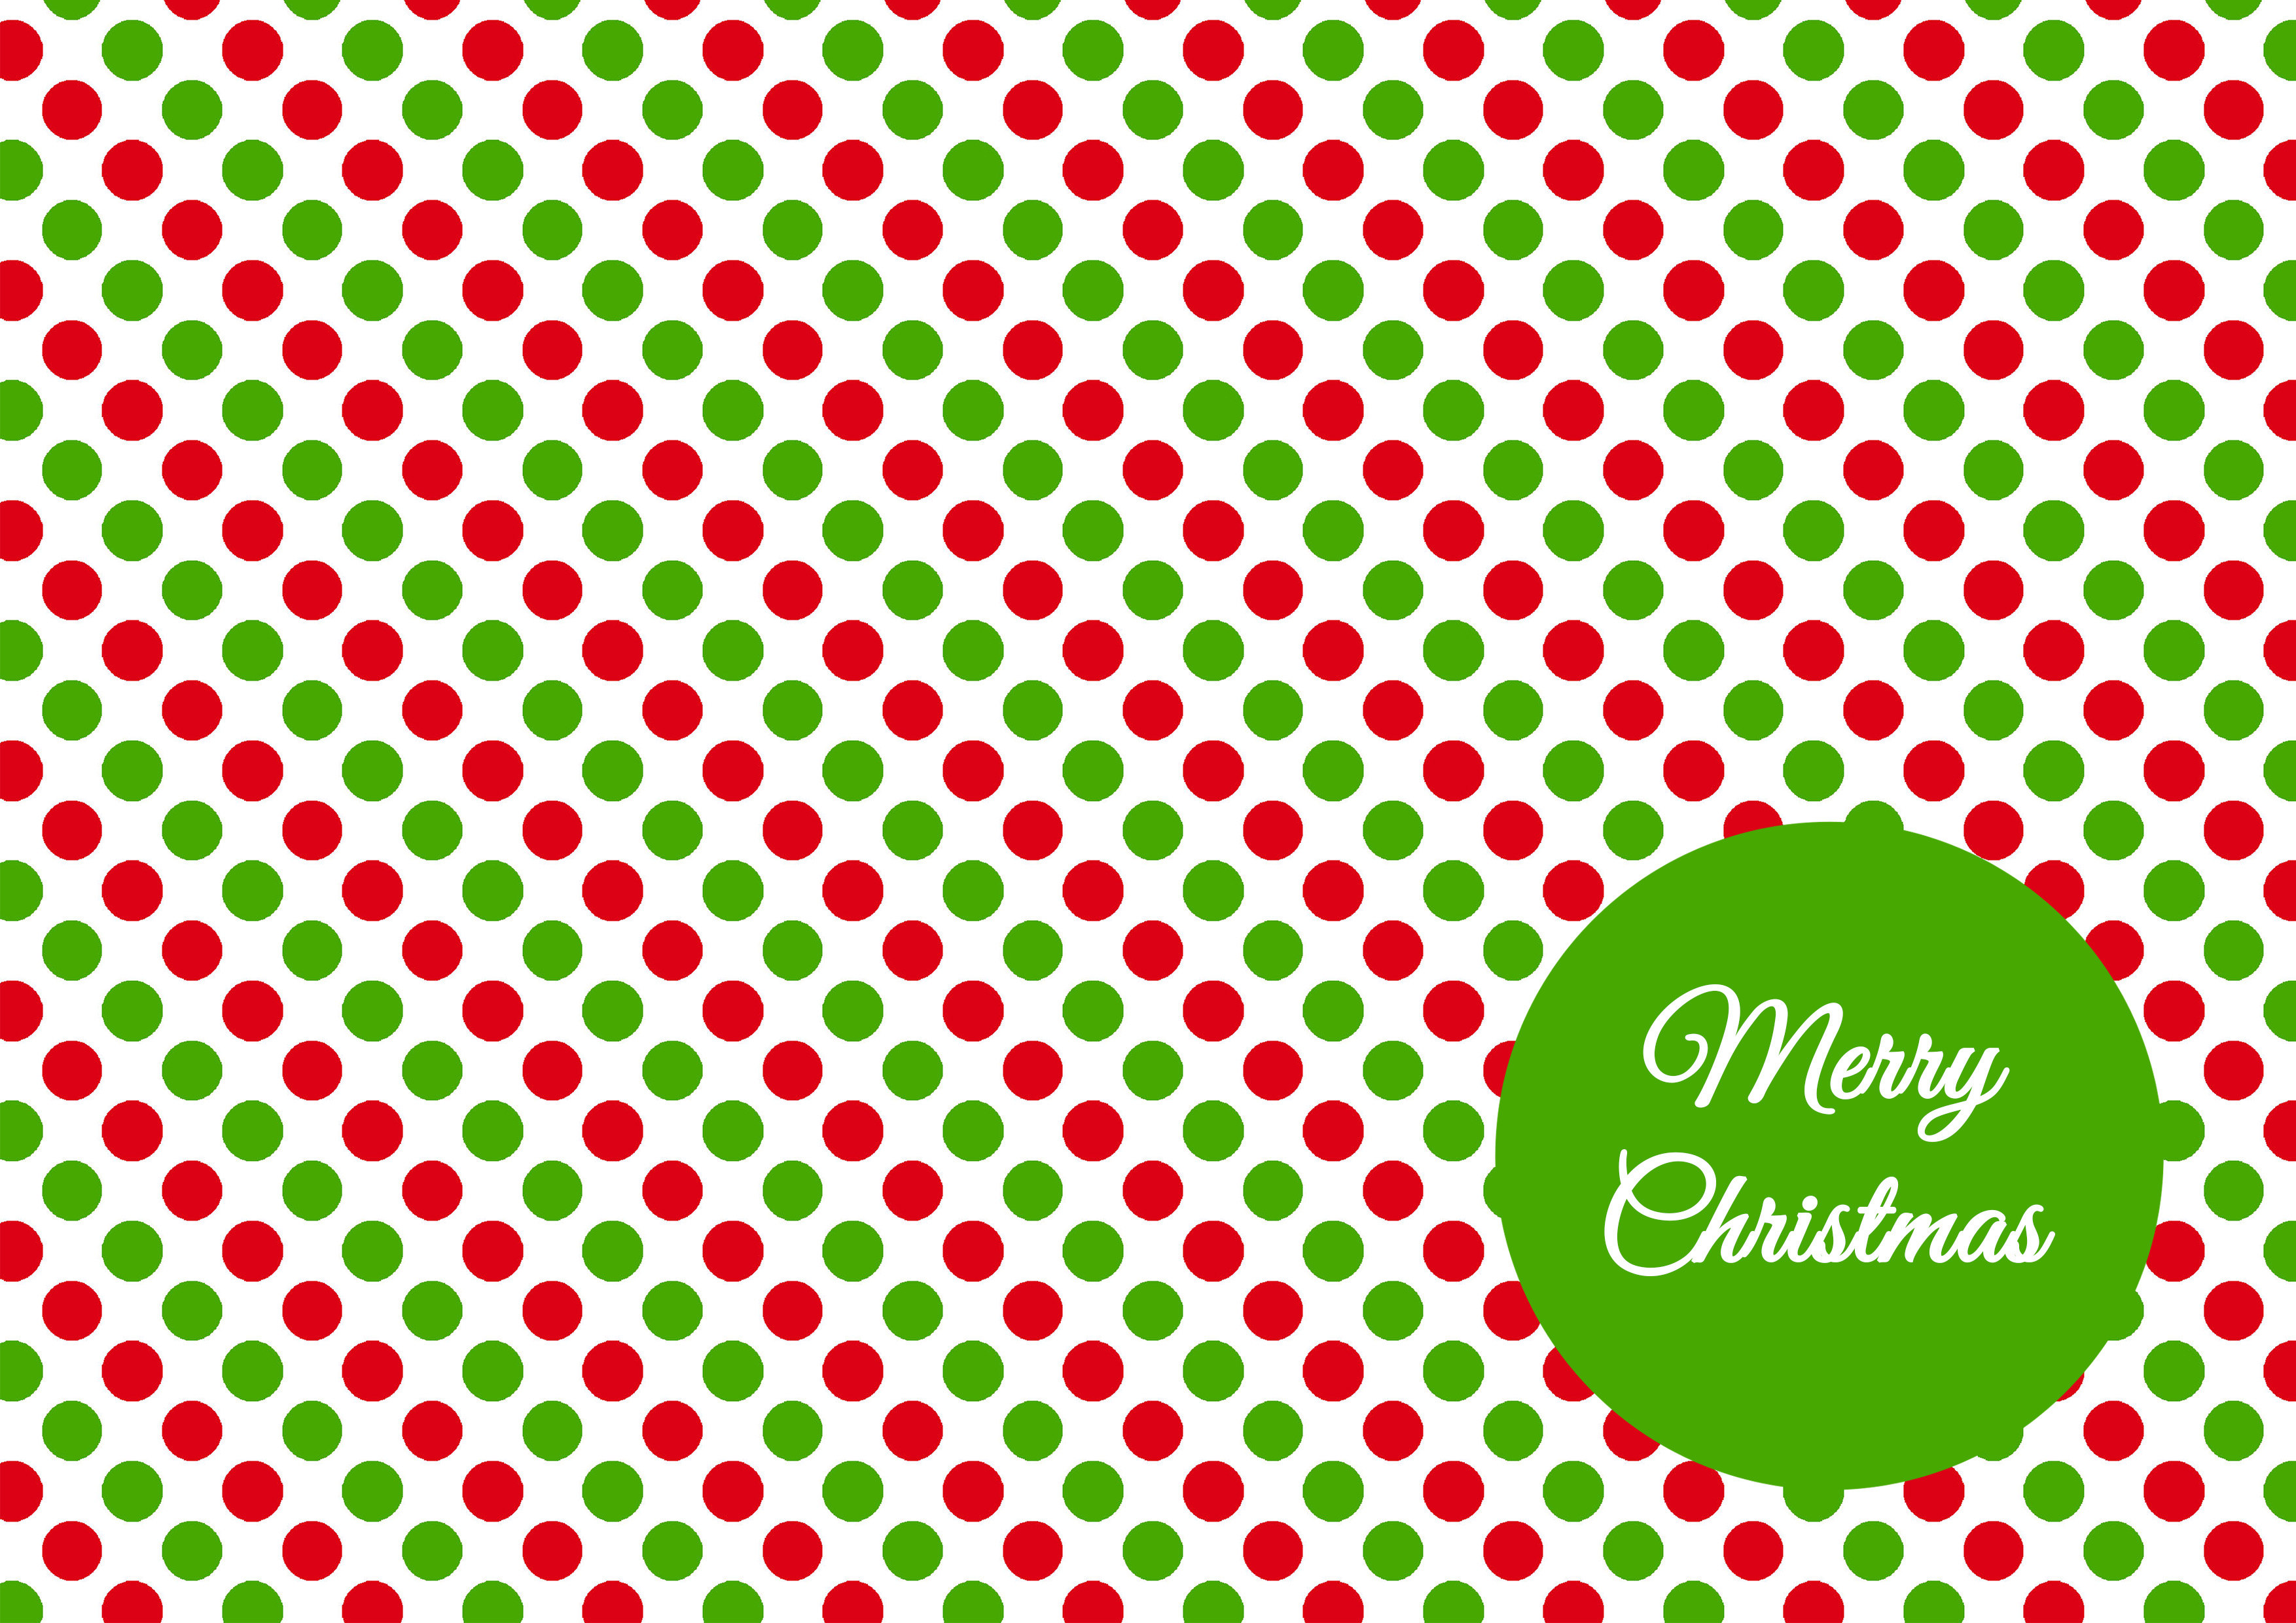 Printable paper backgrounds christmas - Christmas Wallpaper 3 Allaboutthehouse